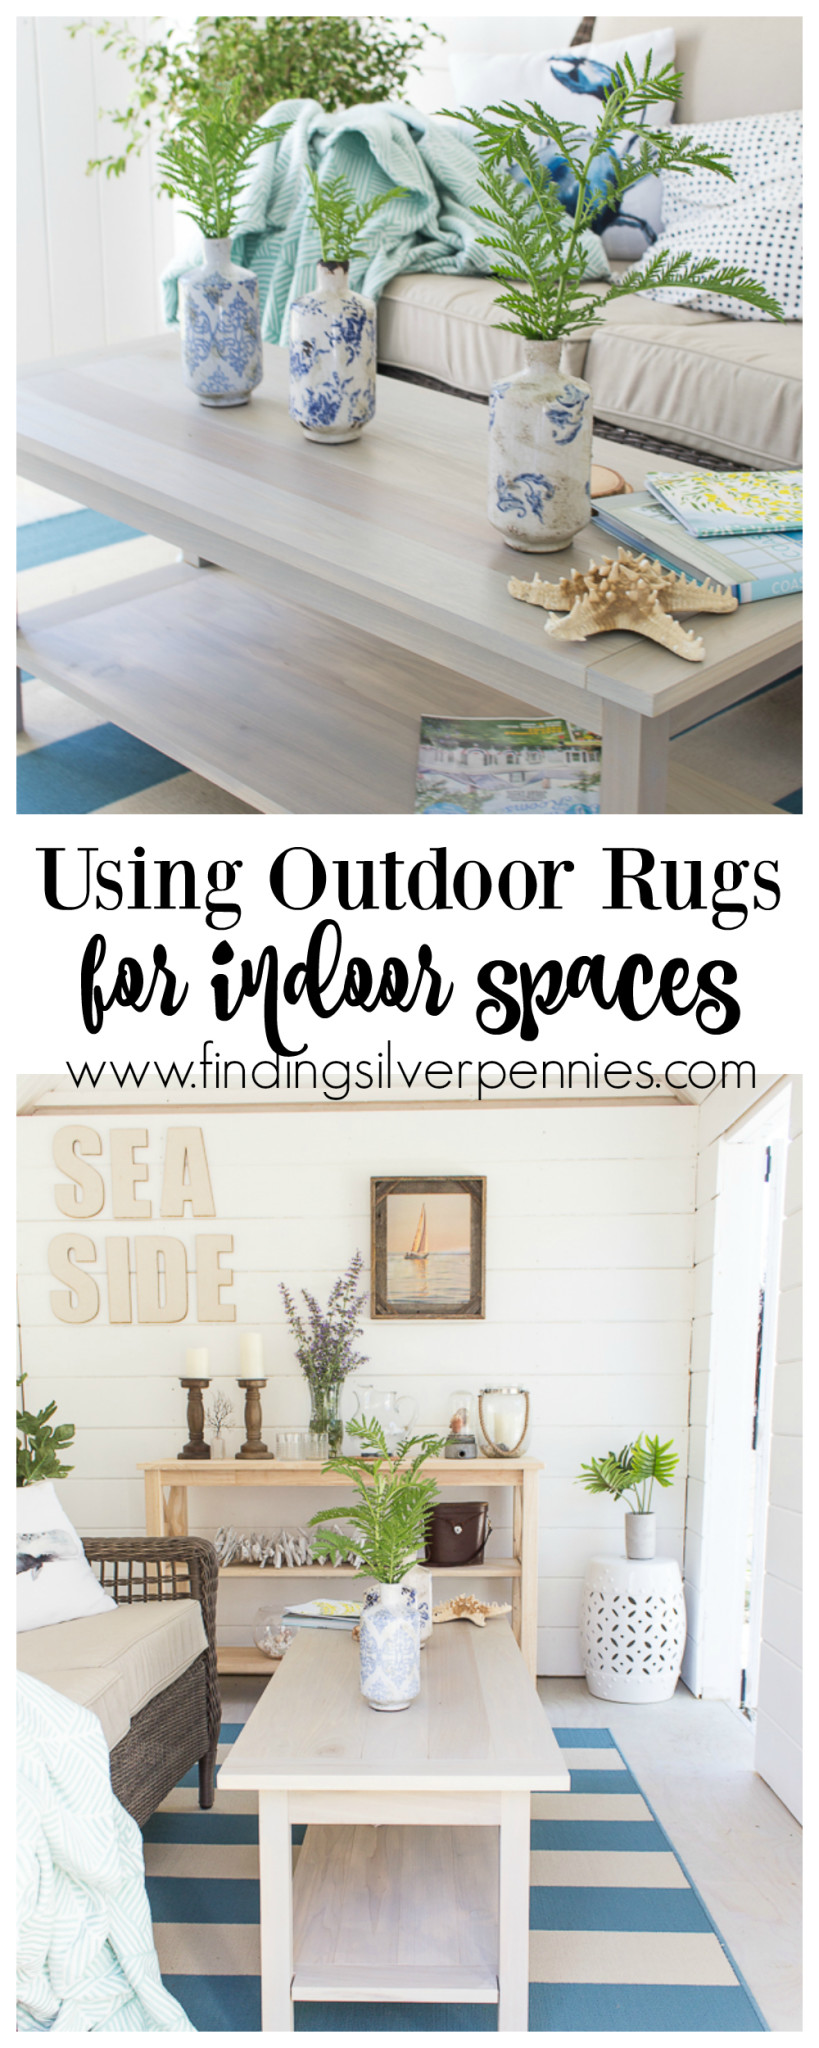 Using Outdoor Rugs for Indoor Spaces